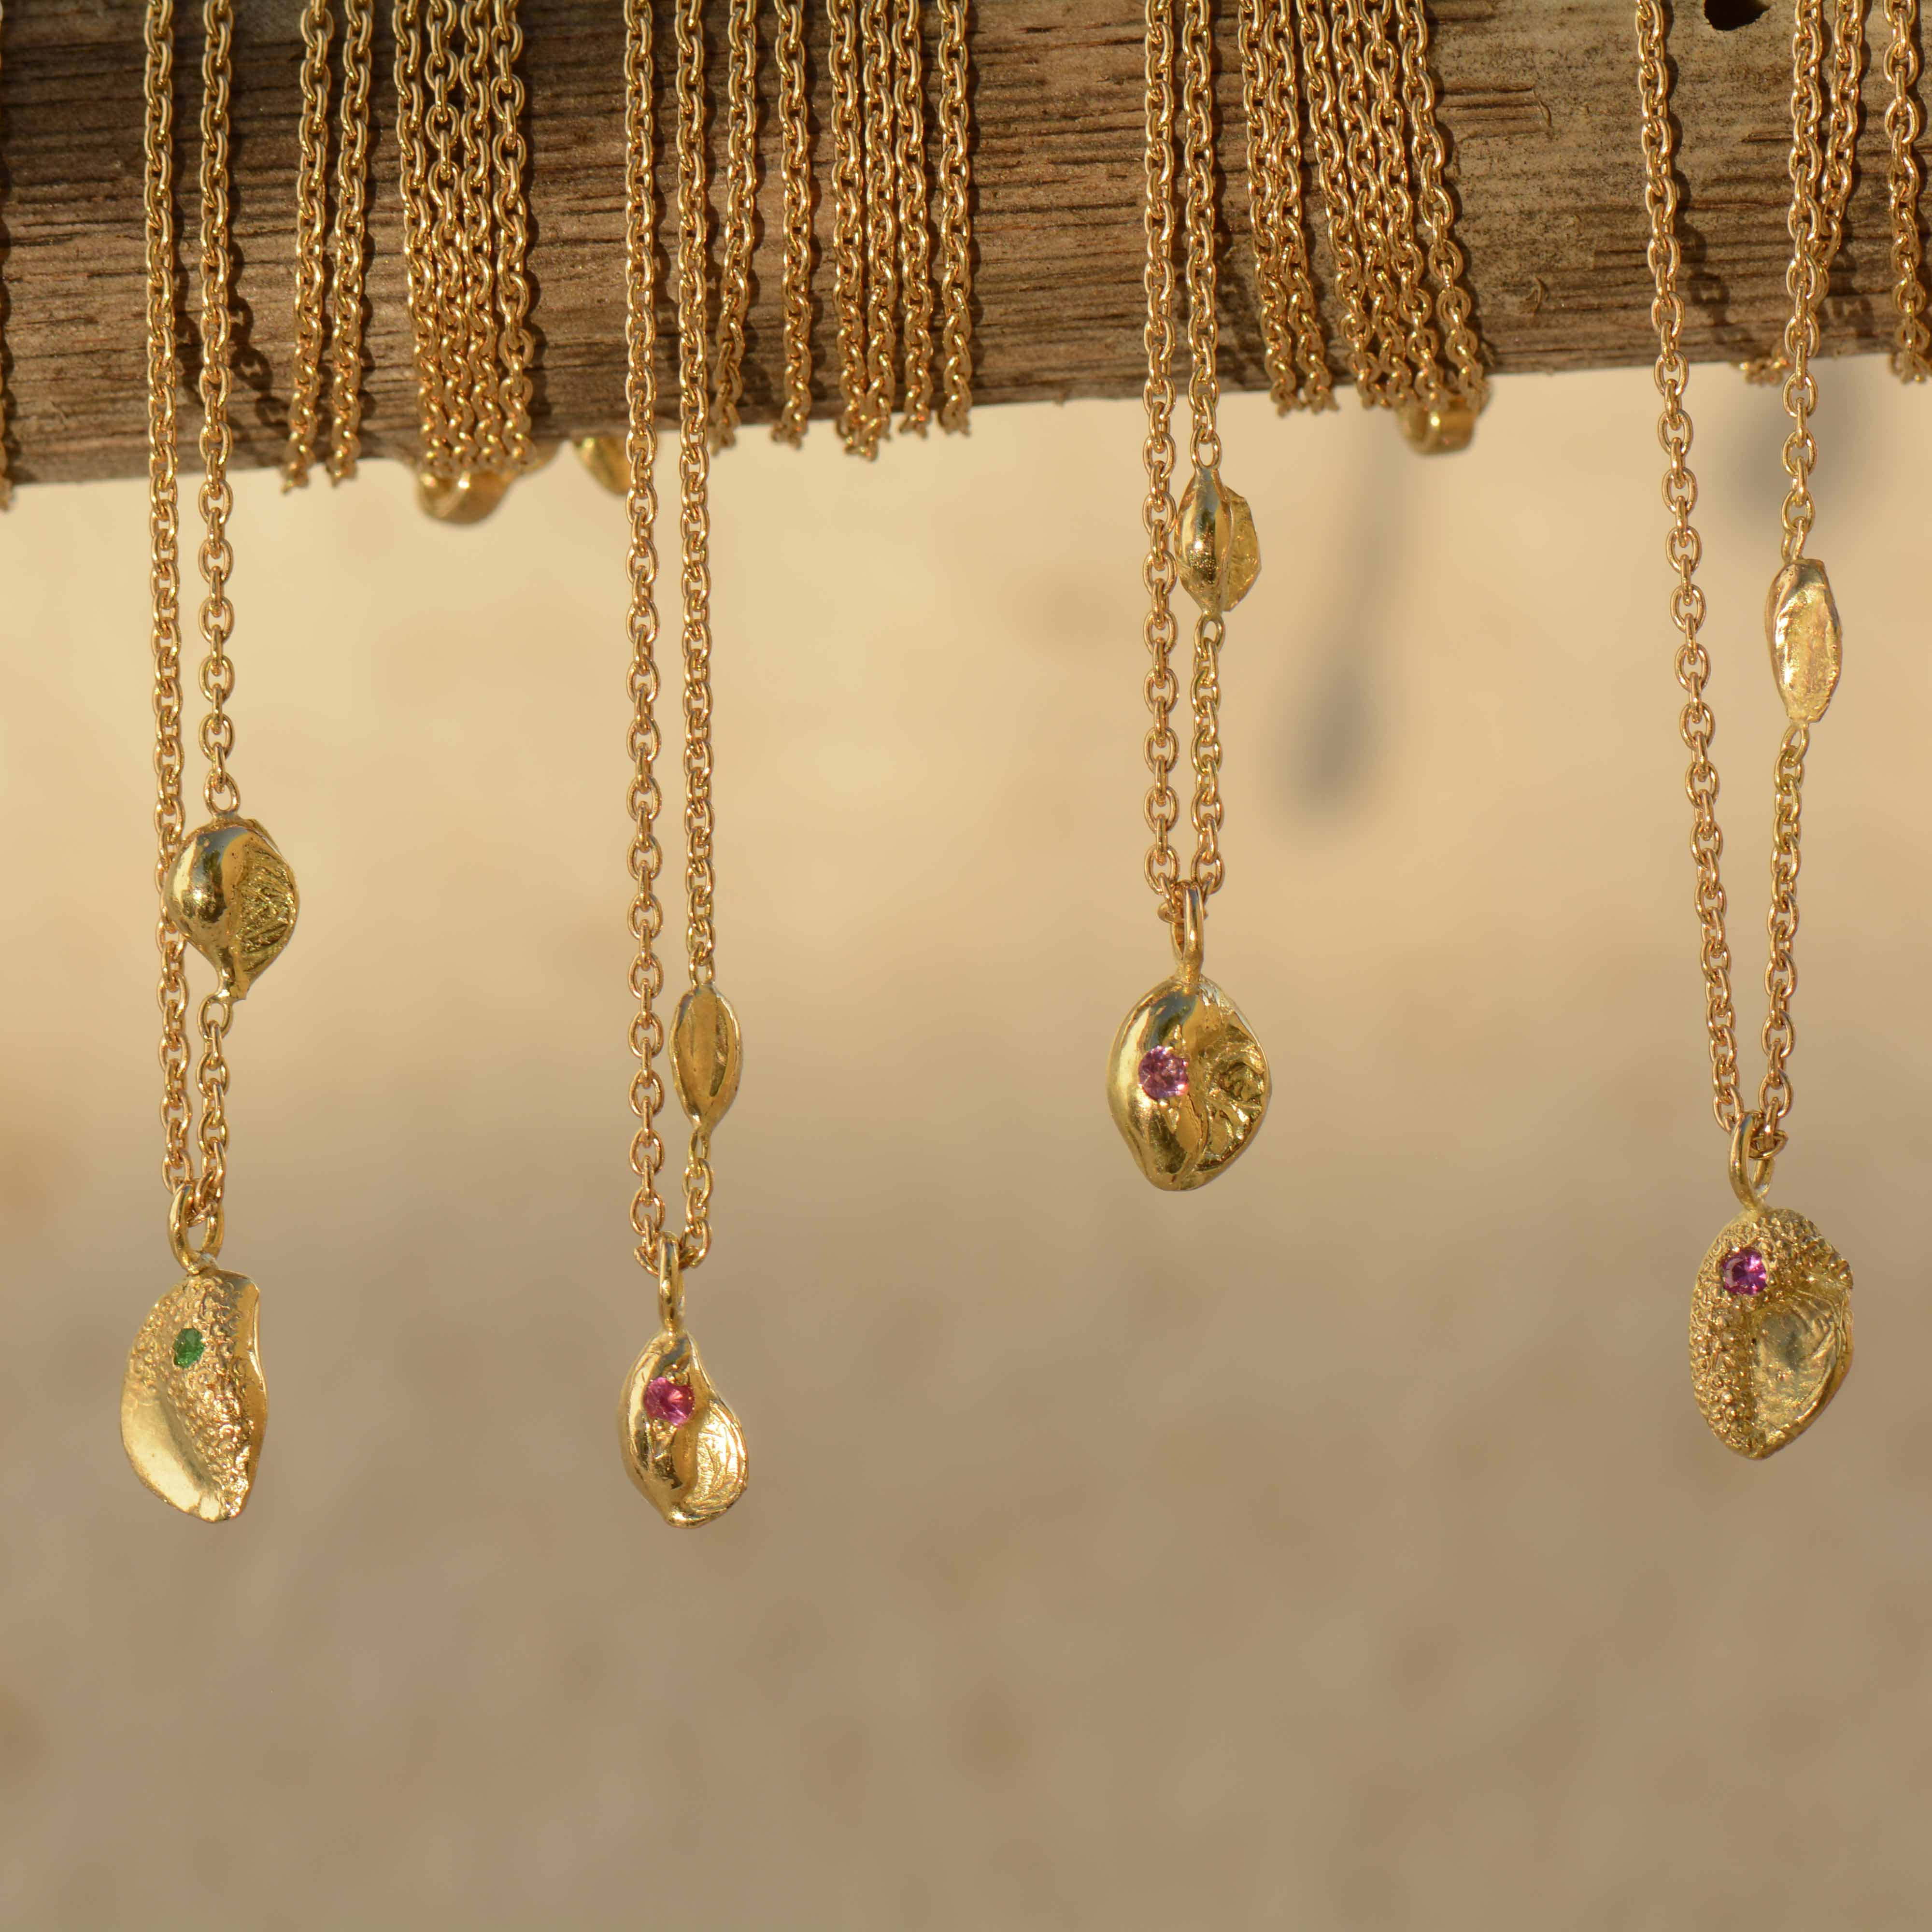 Natasha Collis Ibiza Fine Jewellery 18K gold pendants